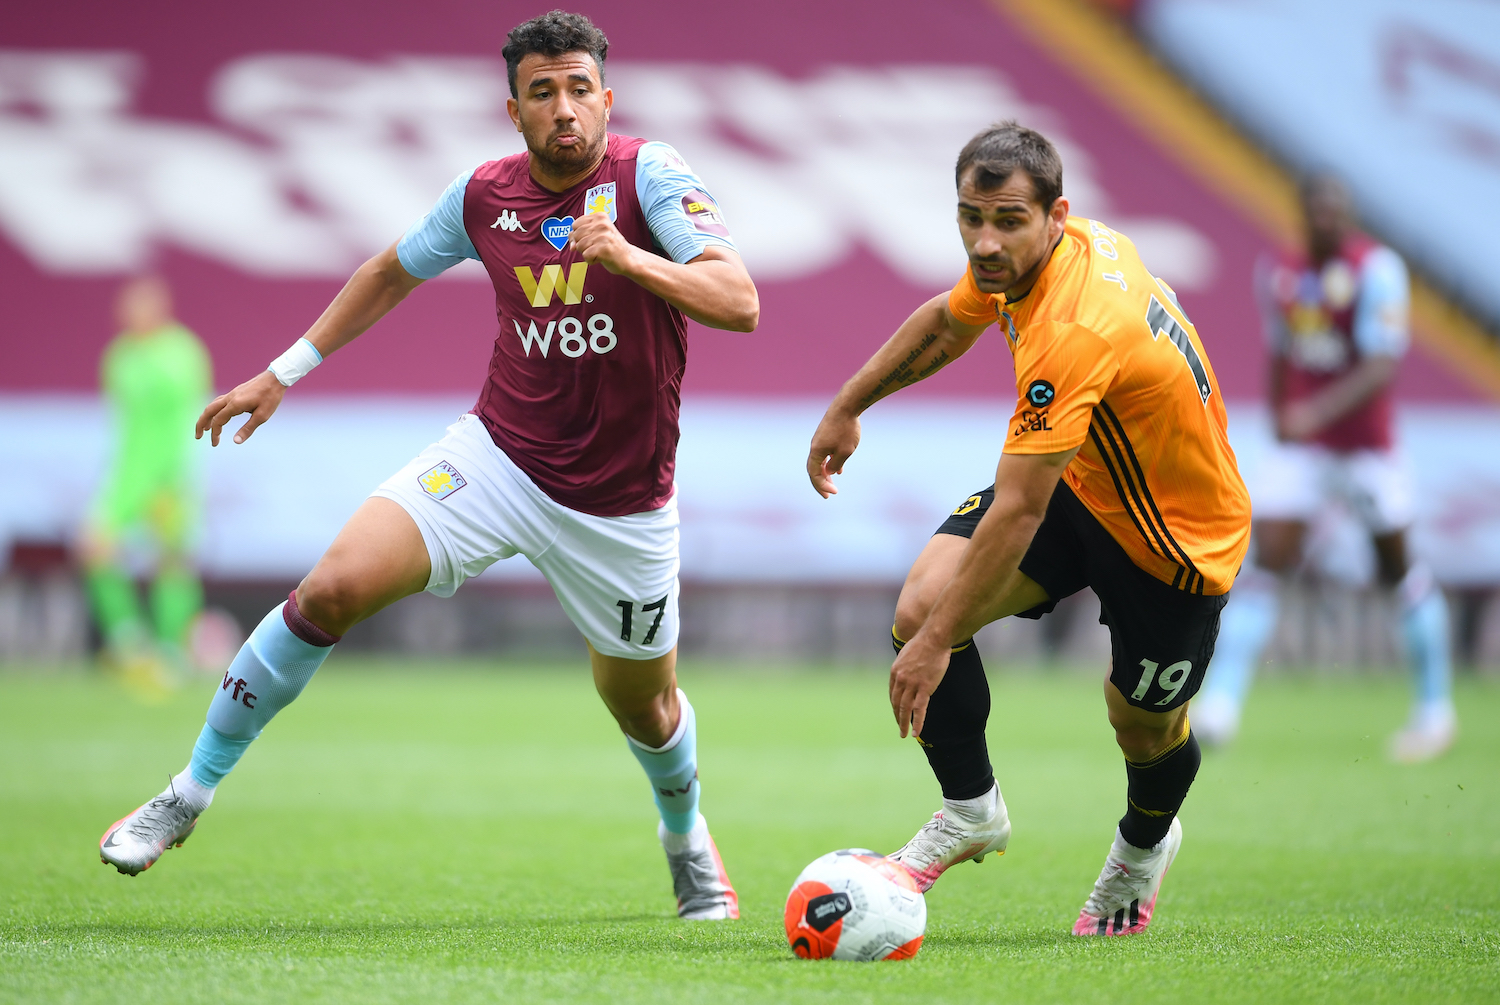 Aston Villa continue relegation battle after loss to Wolves